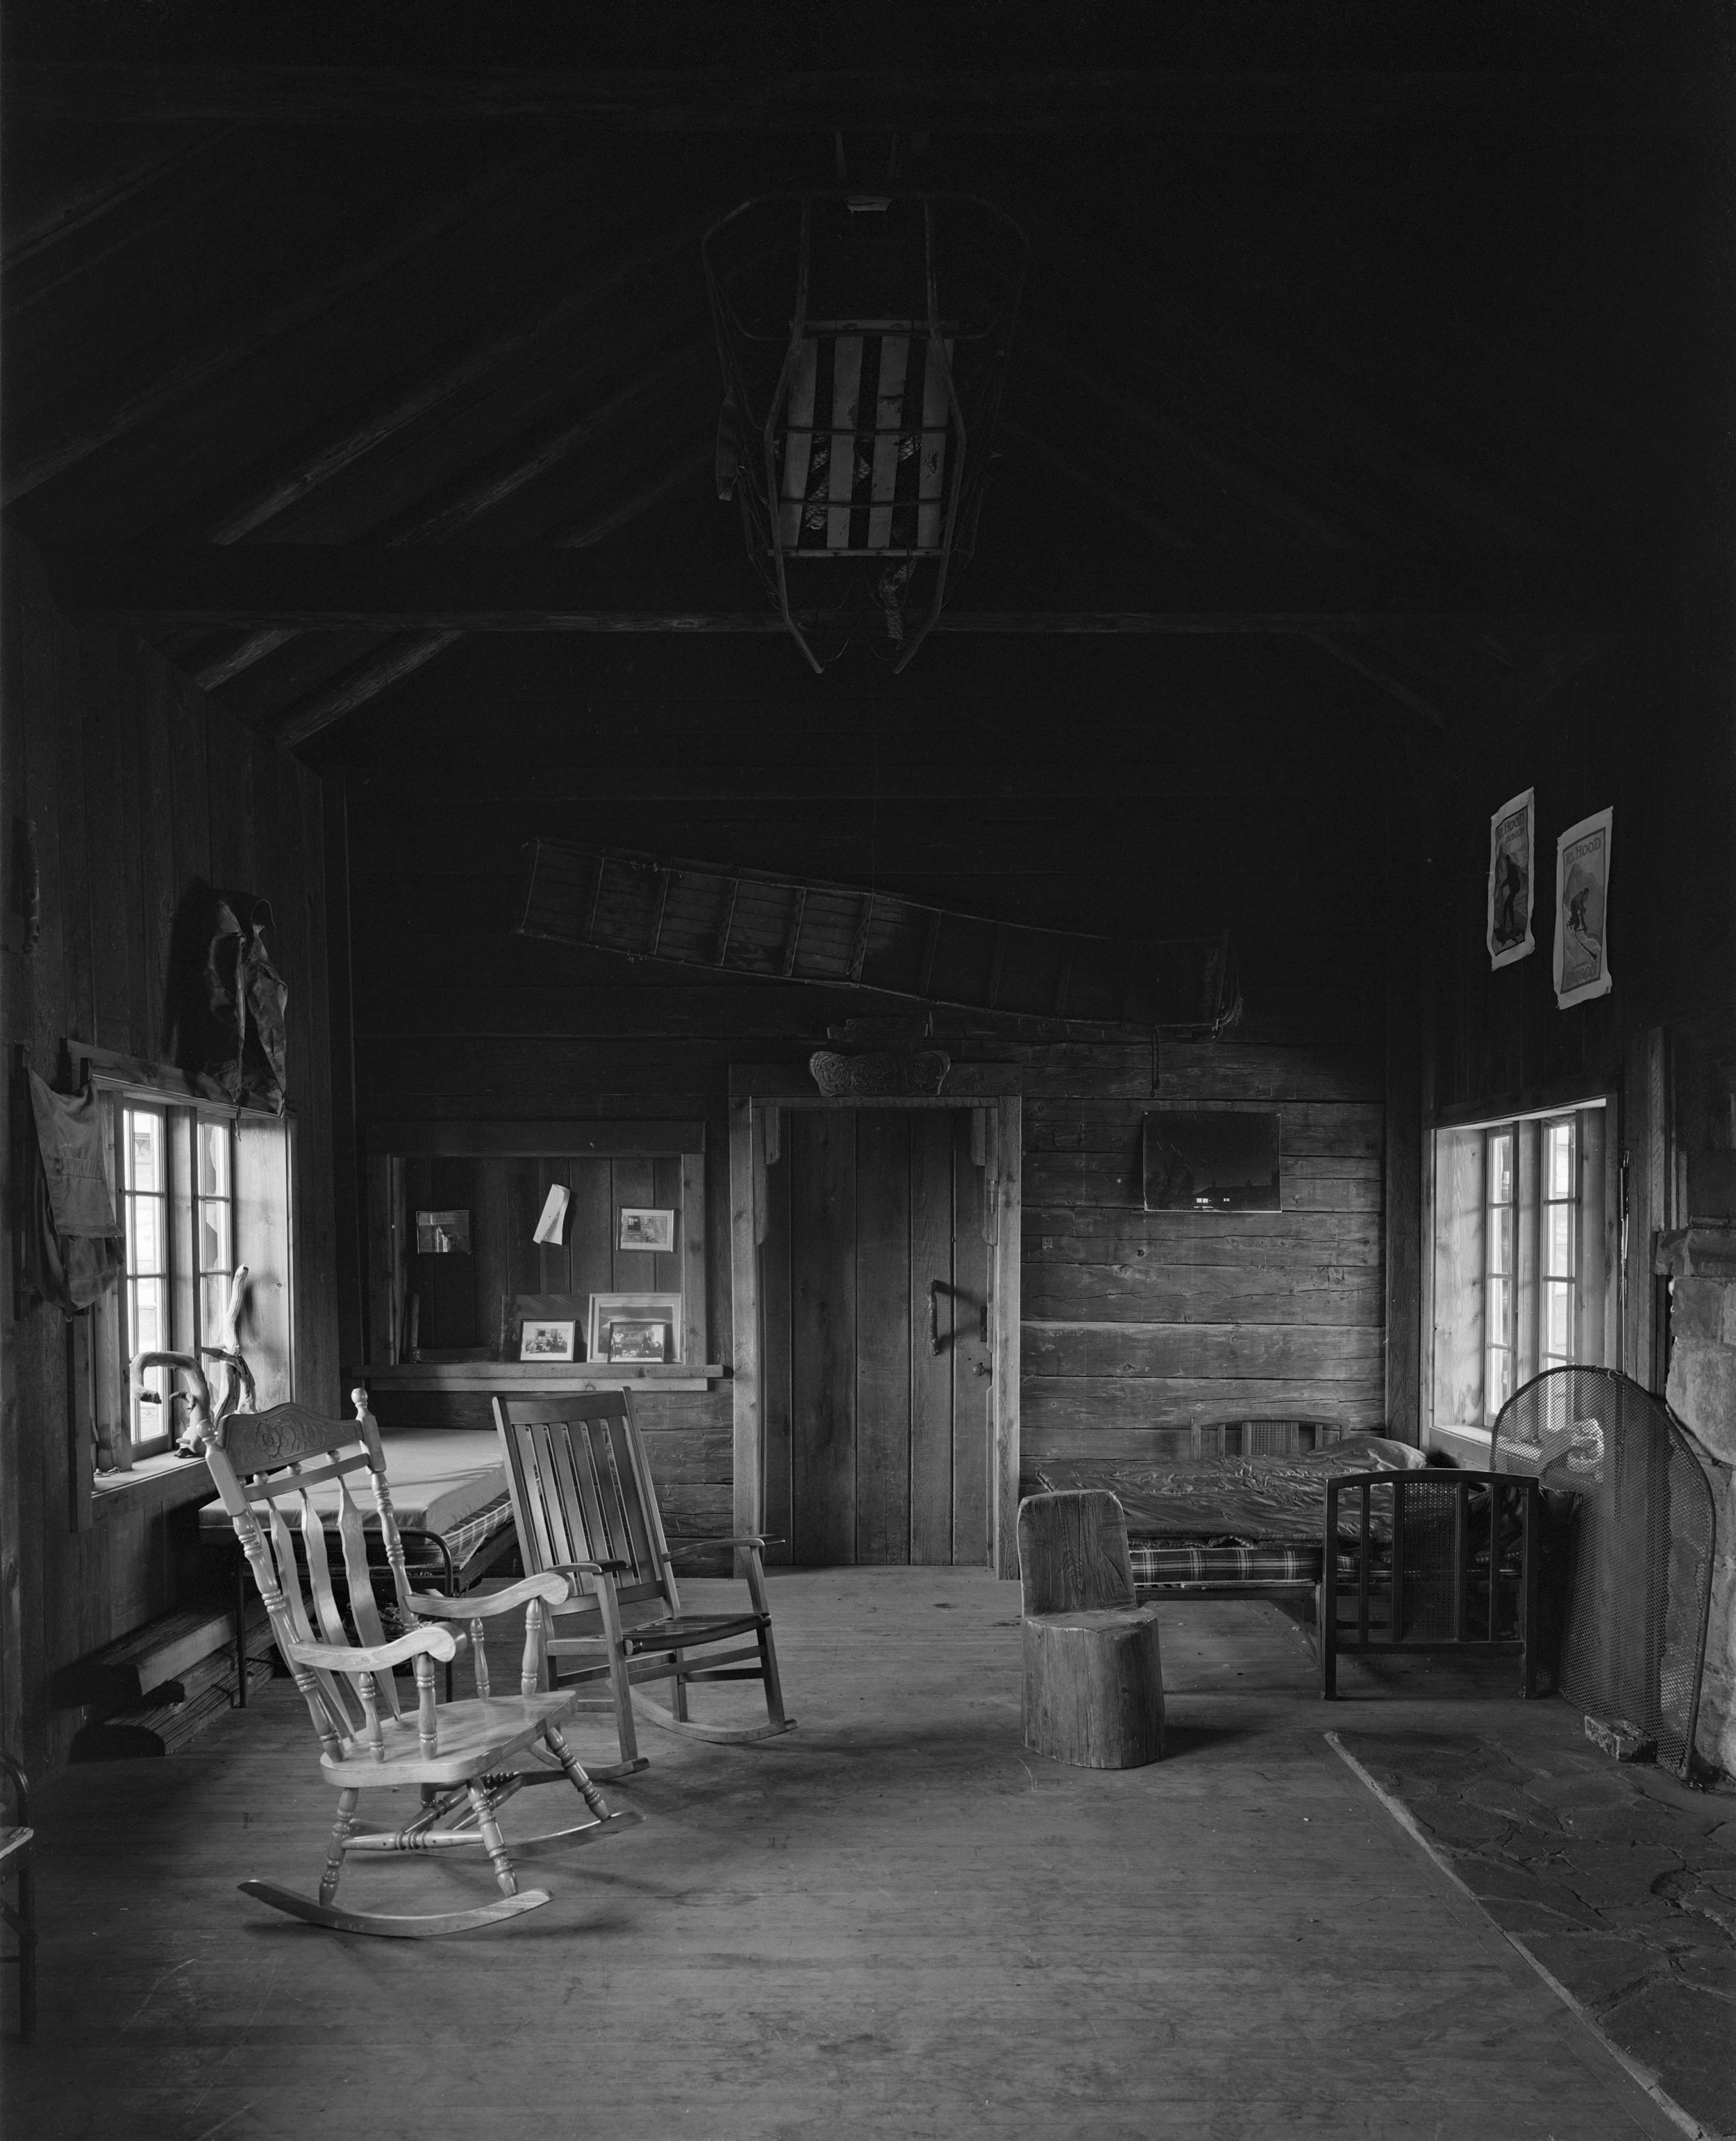 The central living room has an original and fully functional stone fireplace. The door seen here leads to the guest wing. The far wall is made of original planking from 1889 but siding on the wall at the left was replaced in the 1930s by the Civilian Conservation Corps (CCC). Old rescue sleds decorate the wall and roof beams.